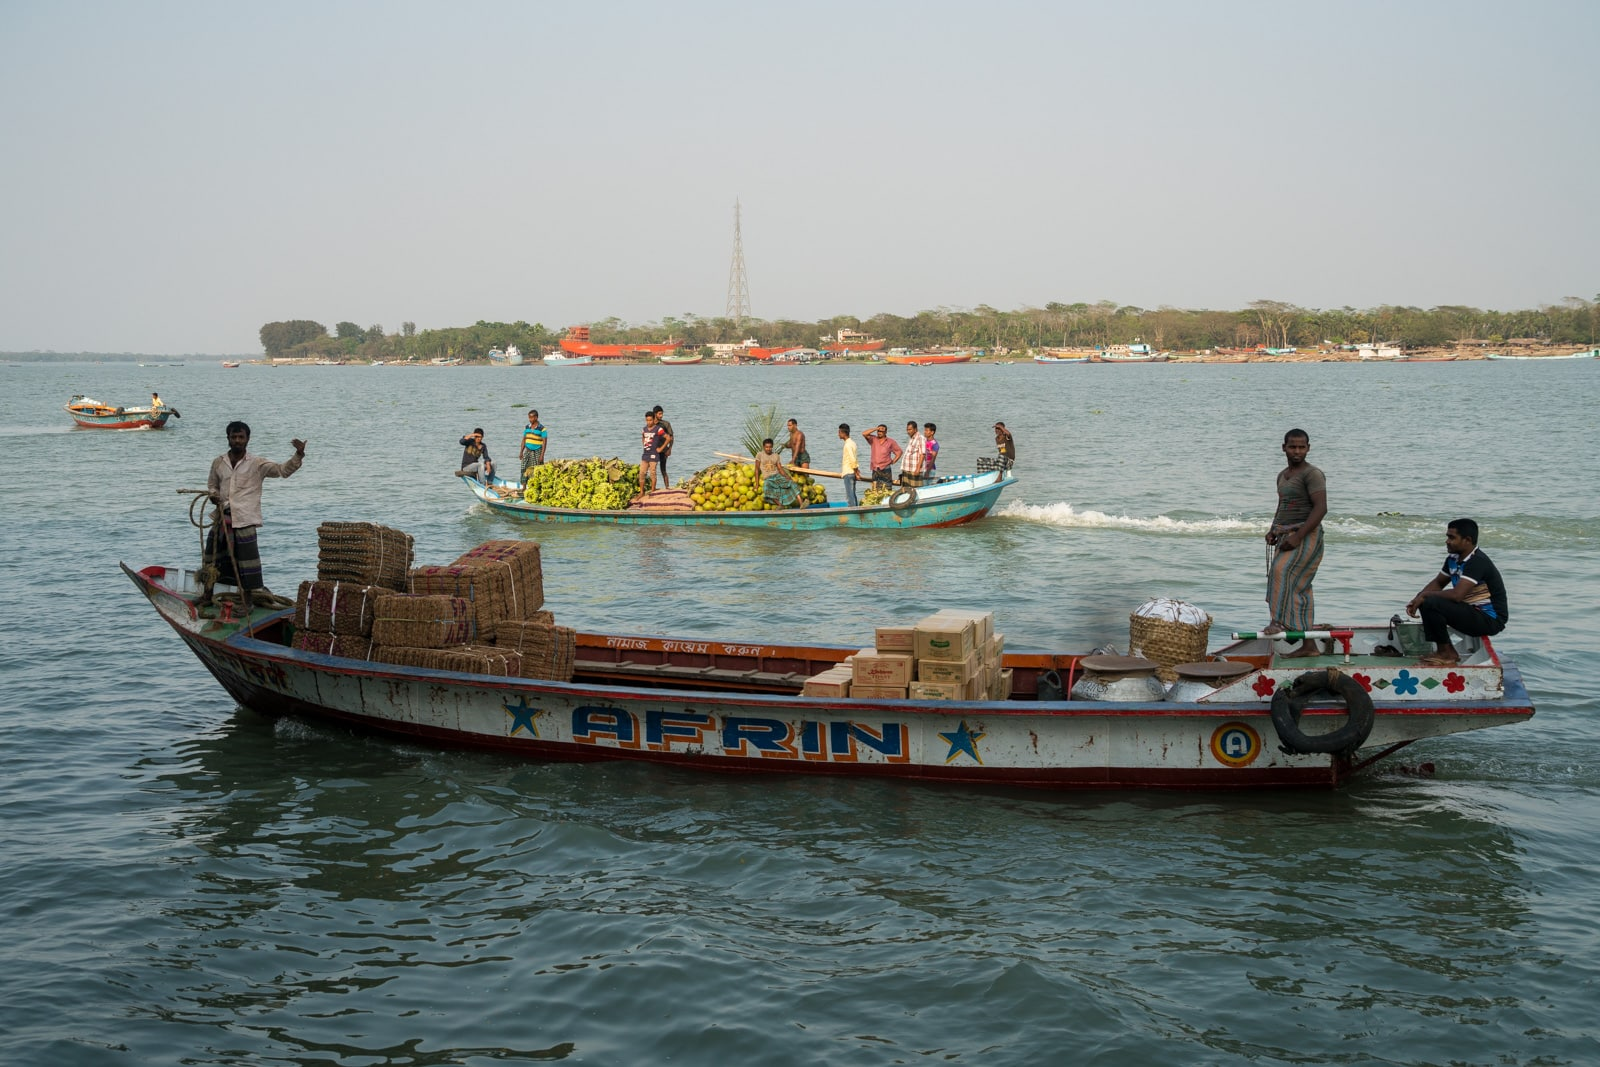 How to get a launch boat from Khulna to Dhaka via Hularhat - Boats passing by on the river in Bangladesh - Lost With Purpose travel blog